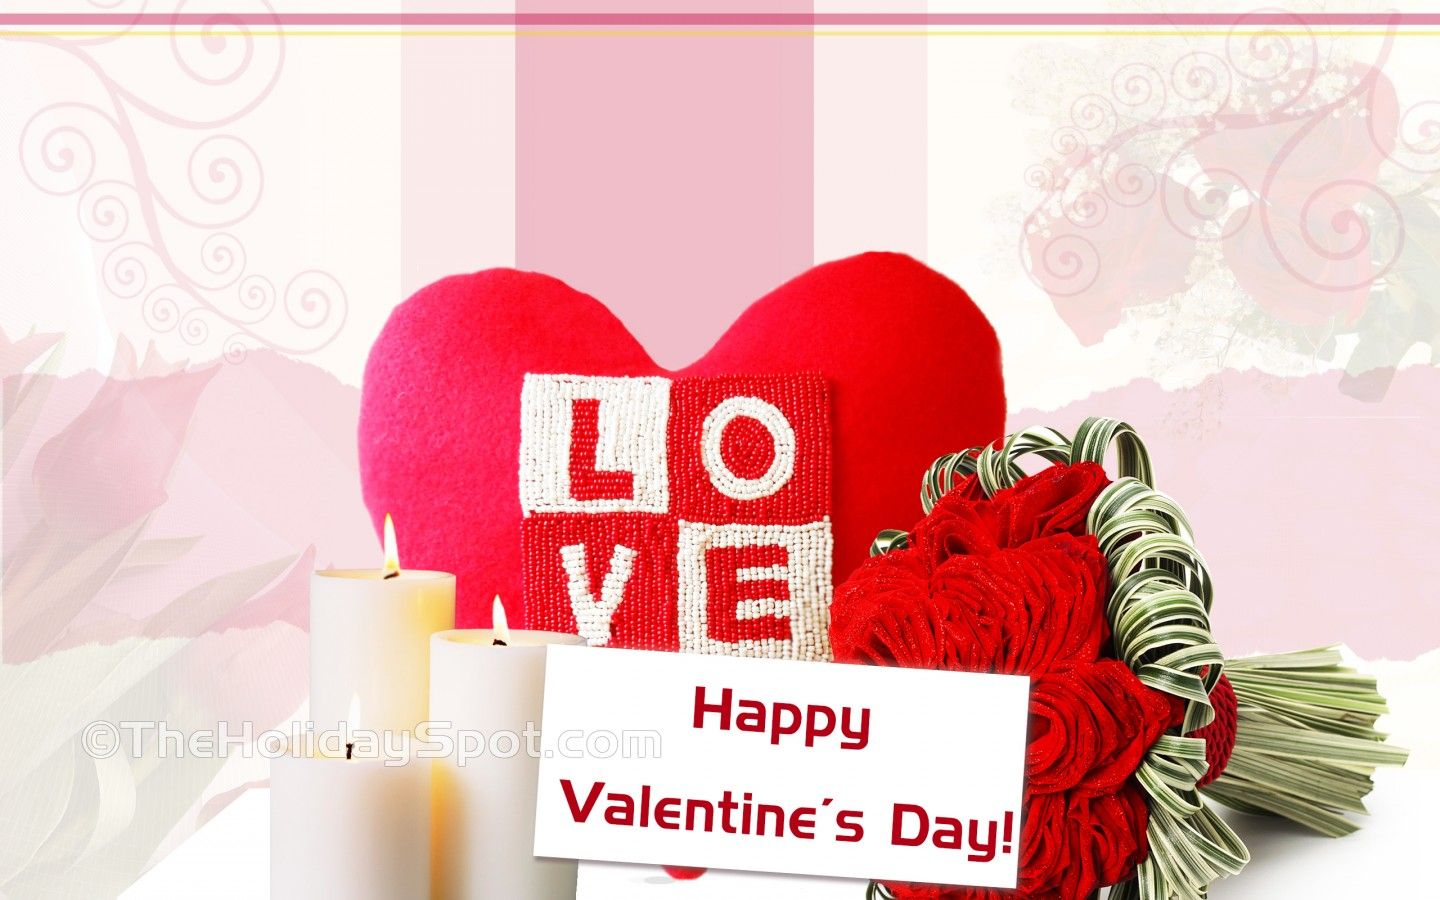 Good Wallpaper Horse Valentines Day - 2686164c4660a613472aed30918b3bfd  Graphic_93628.jpg